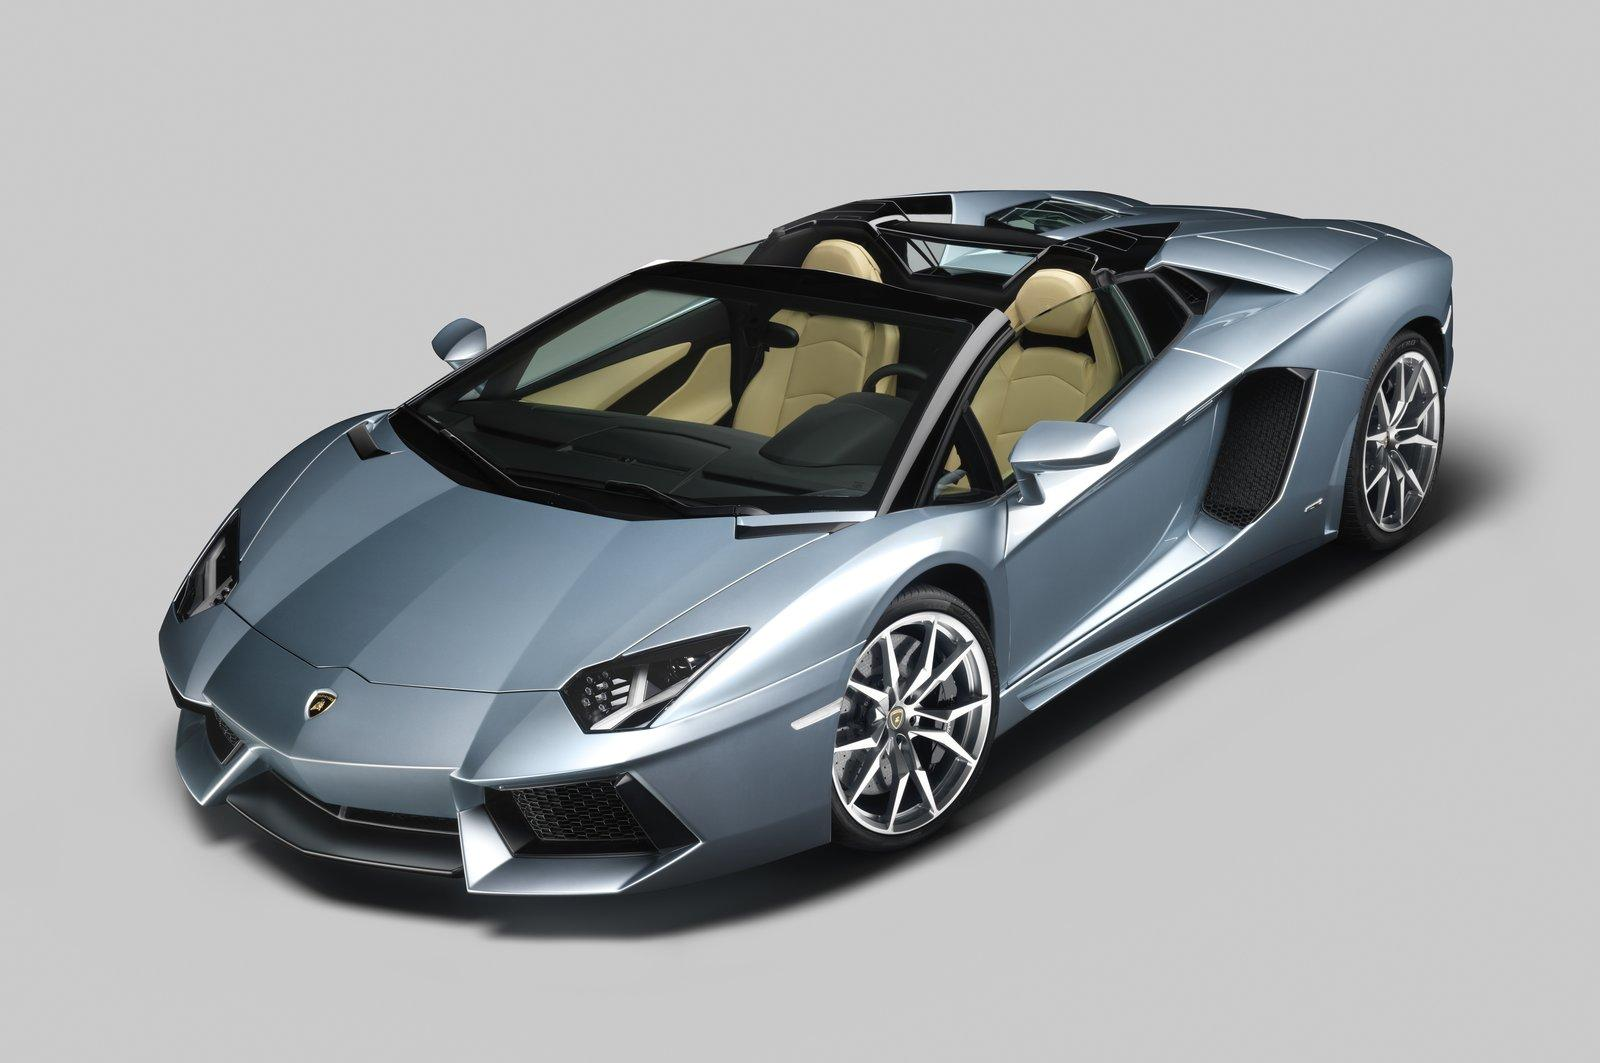 2013 Lamborghini Aventador Lp700 4 Roadster Revealed HD Wallpapers Download free images and photos [musssic.tk]